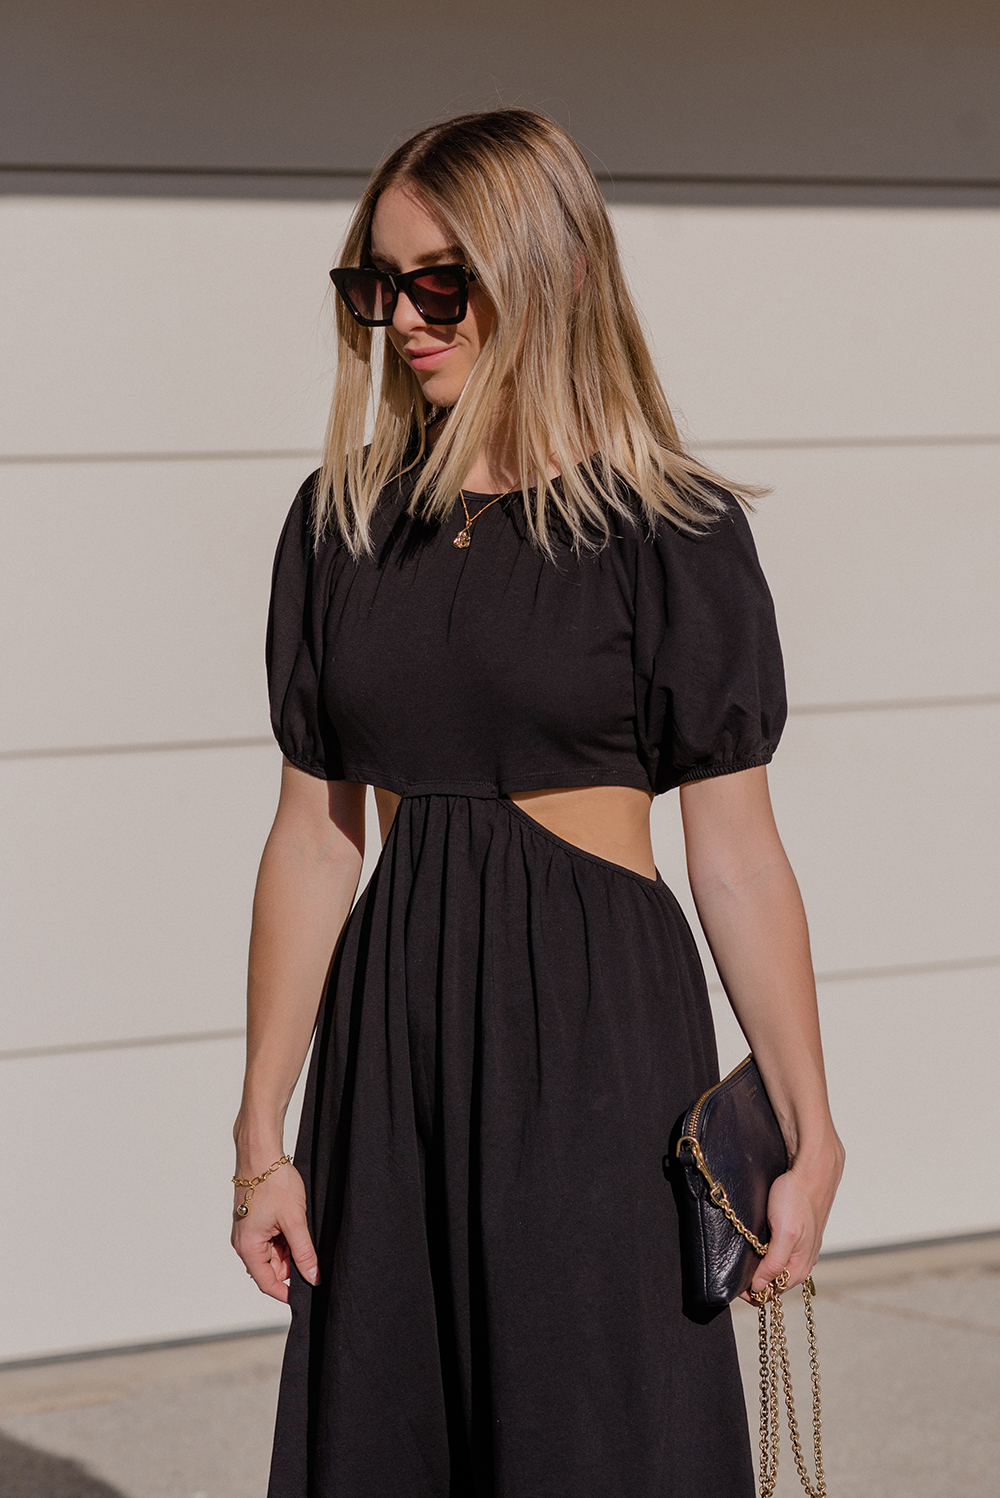 ASOS Dress, Converse Sneakers, Deadly Ponies Bag | StolenInspiration.com NZ Fashion Blog